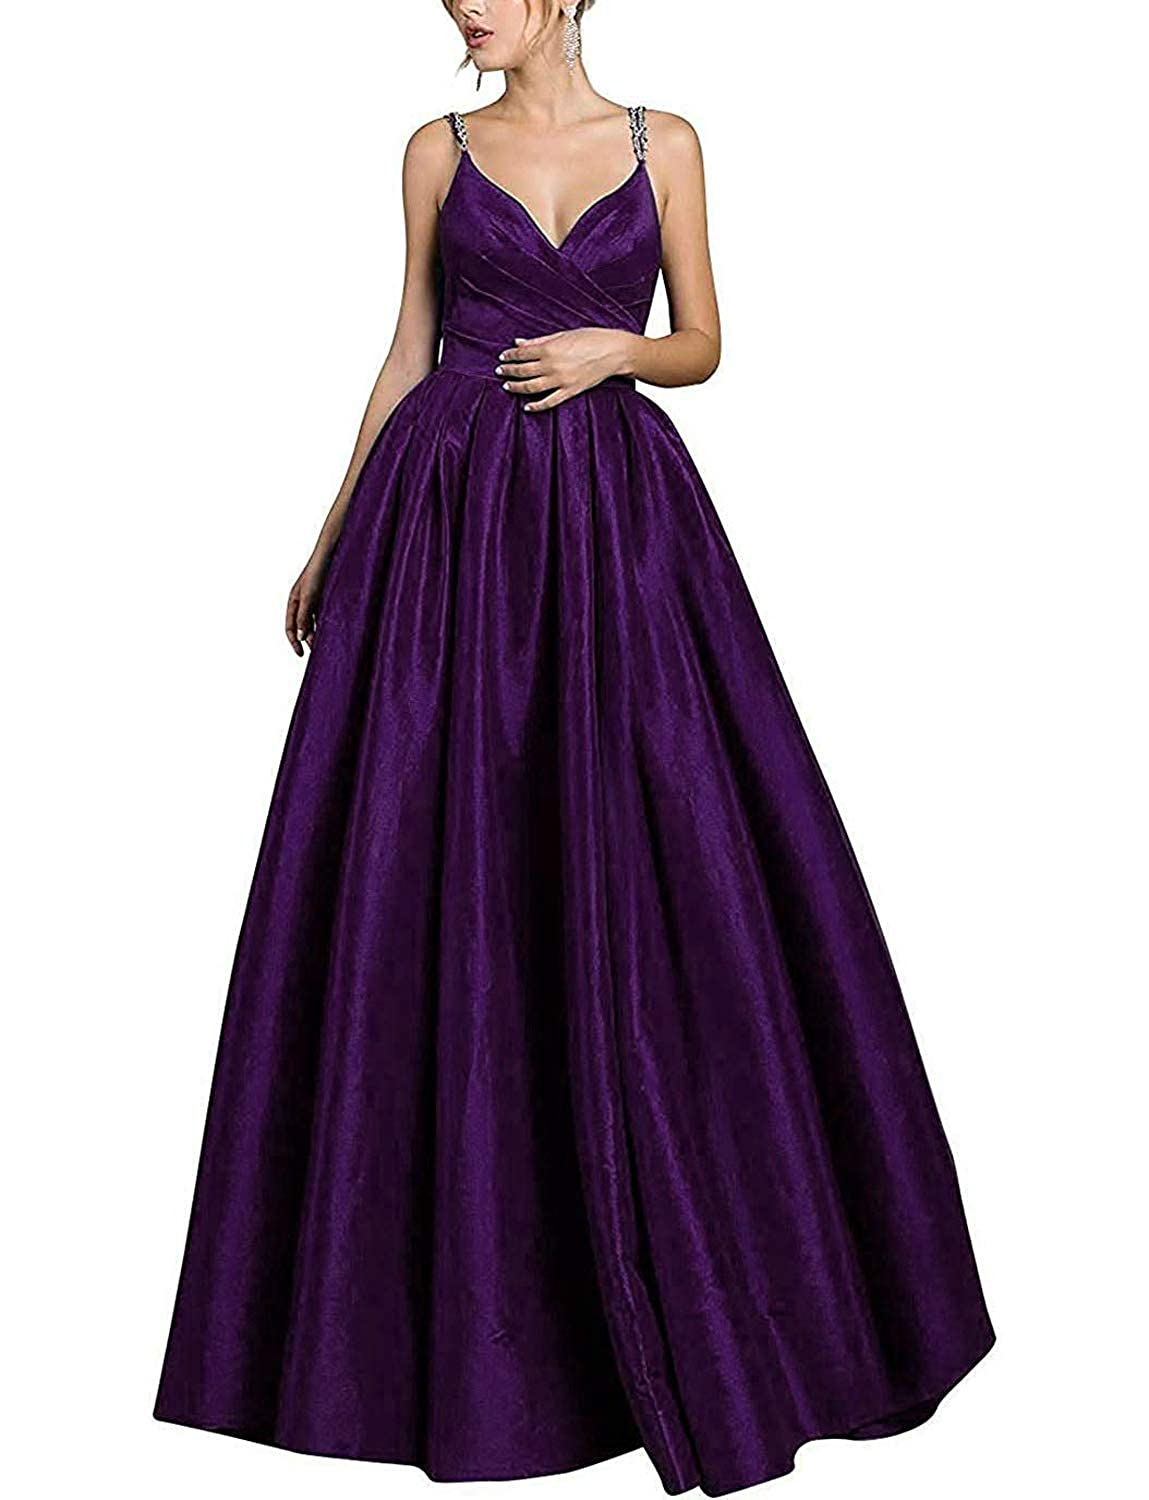 Dark Purple Satin V Neck Formal Long Prom Dresses for Women 2019 Evening Gowns with Pockets